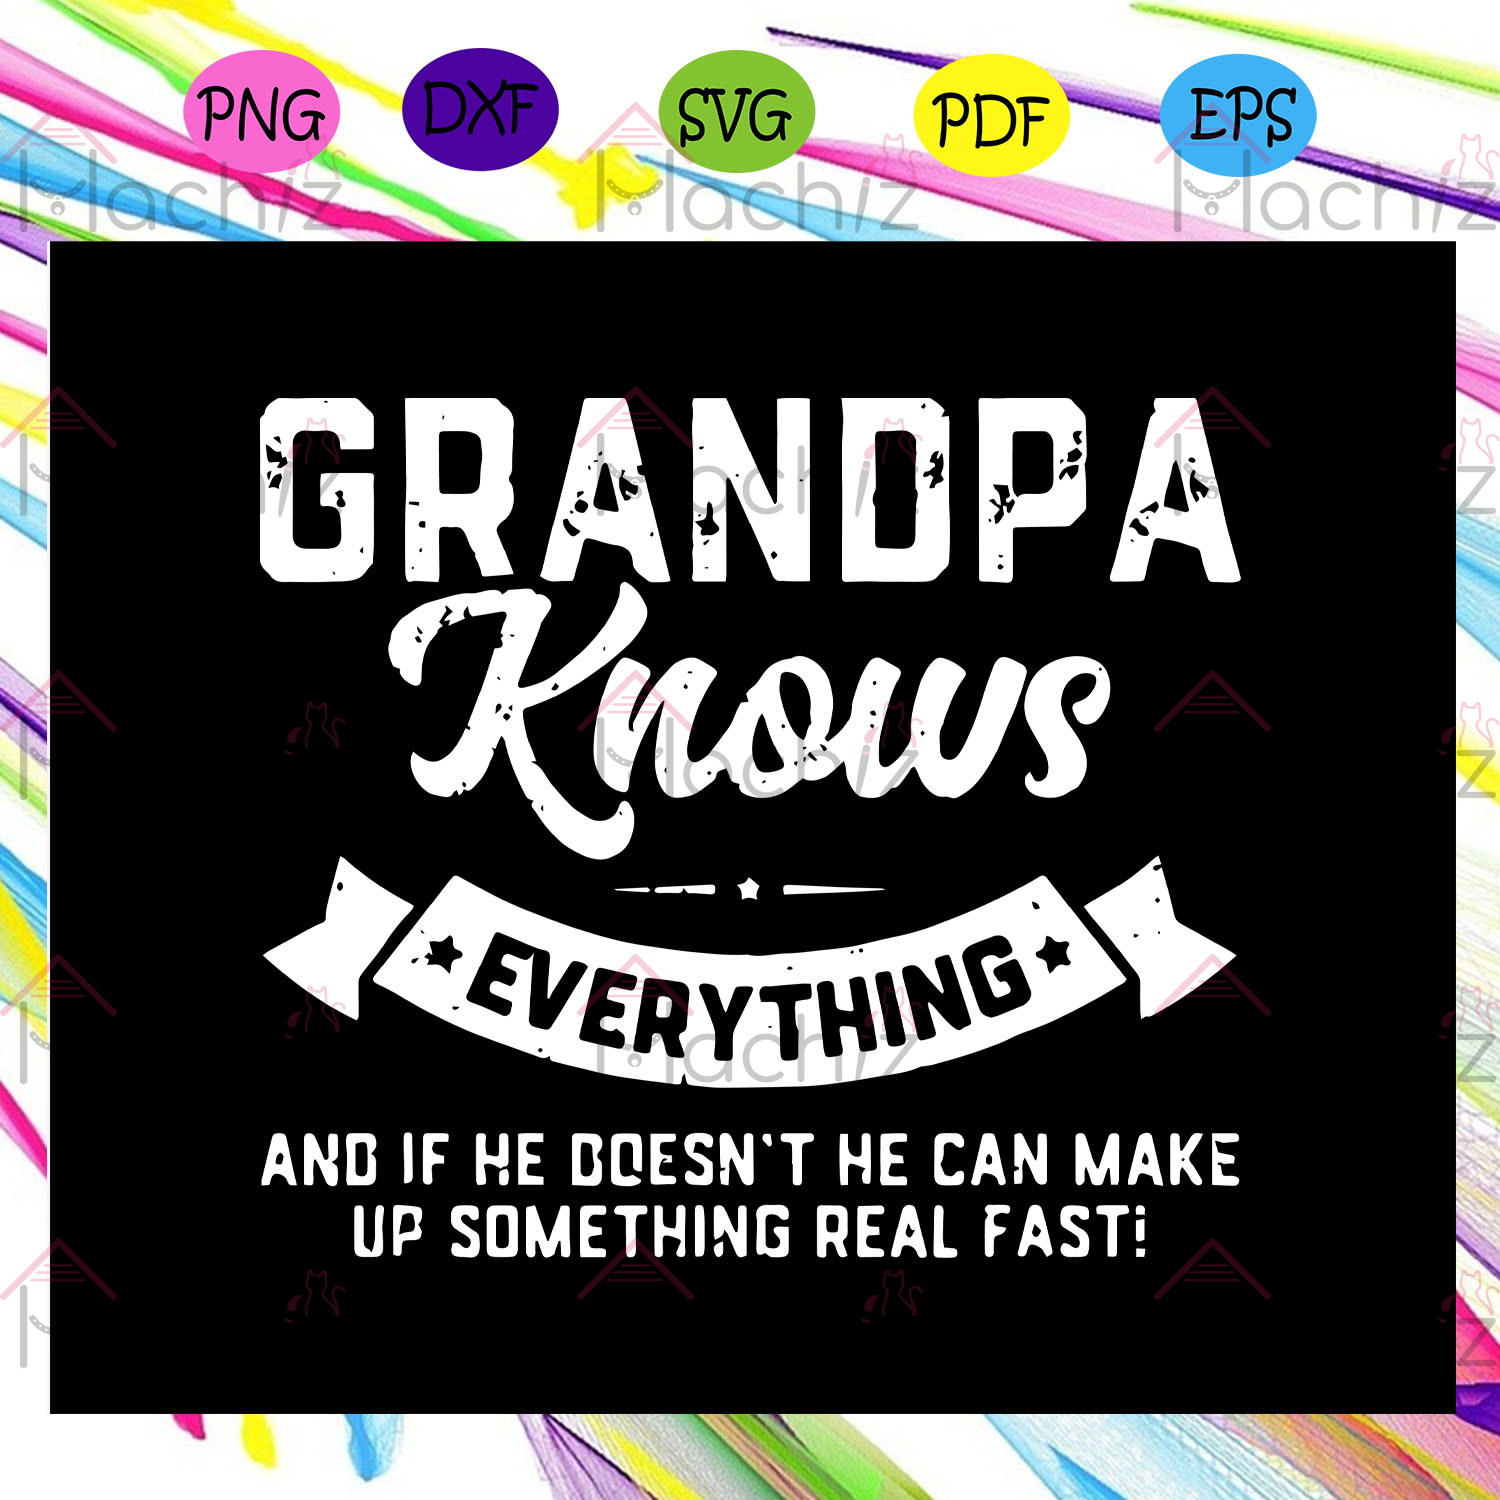 Grandpa knows everything svg, fathers day svg, fathers day gift, gift for papa, fathers day lover, fathers day lover gift, dad life, dad svg, papa svg, family, Files For Silhouette, Files For Cricut, SVG, DXF, EPS, PNG, Instant Download